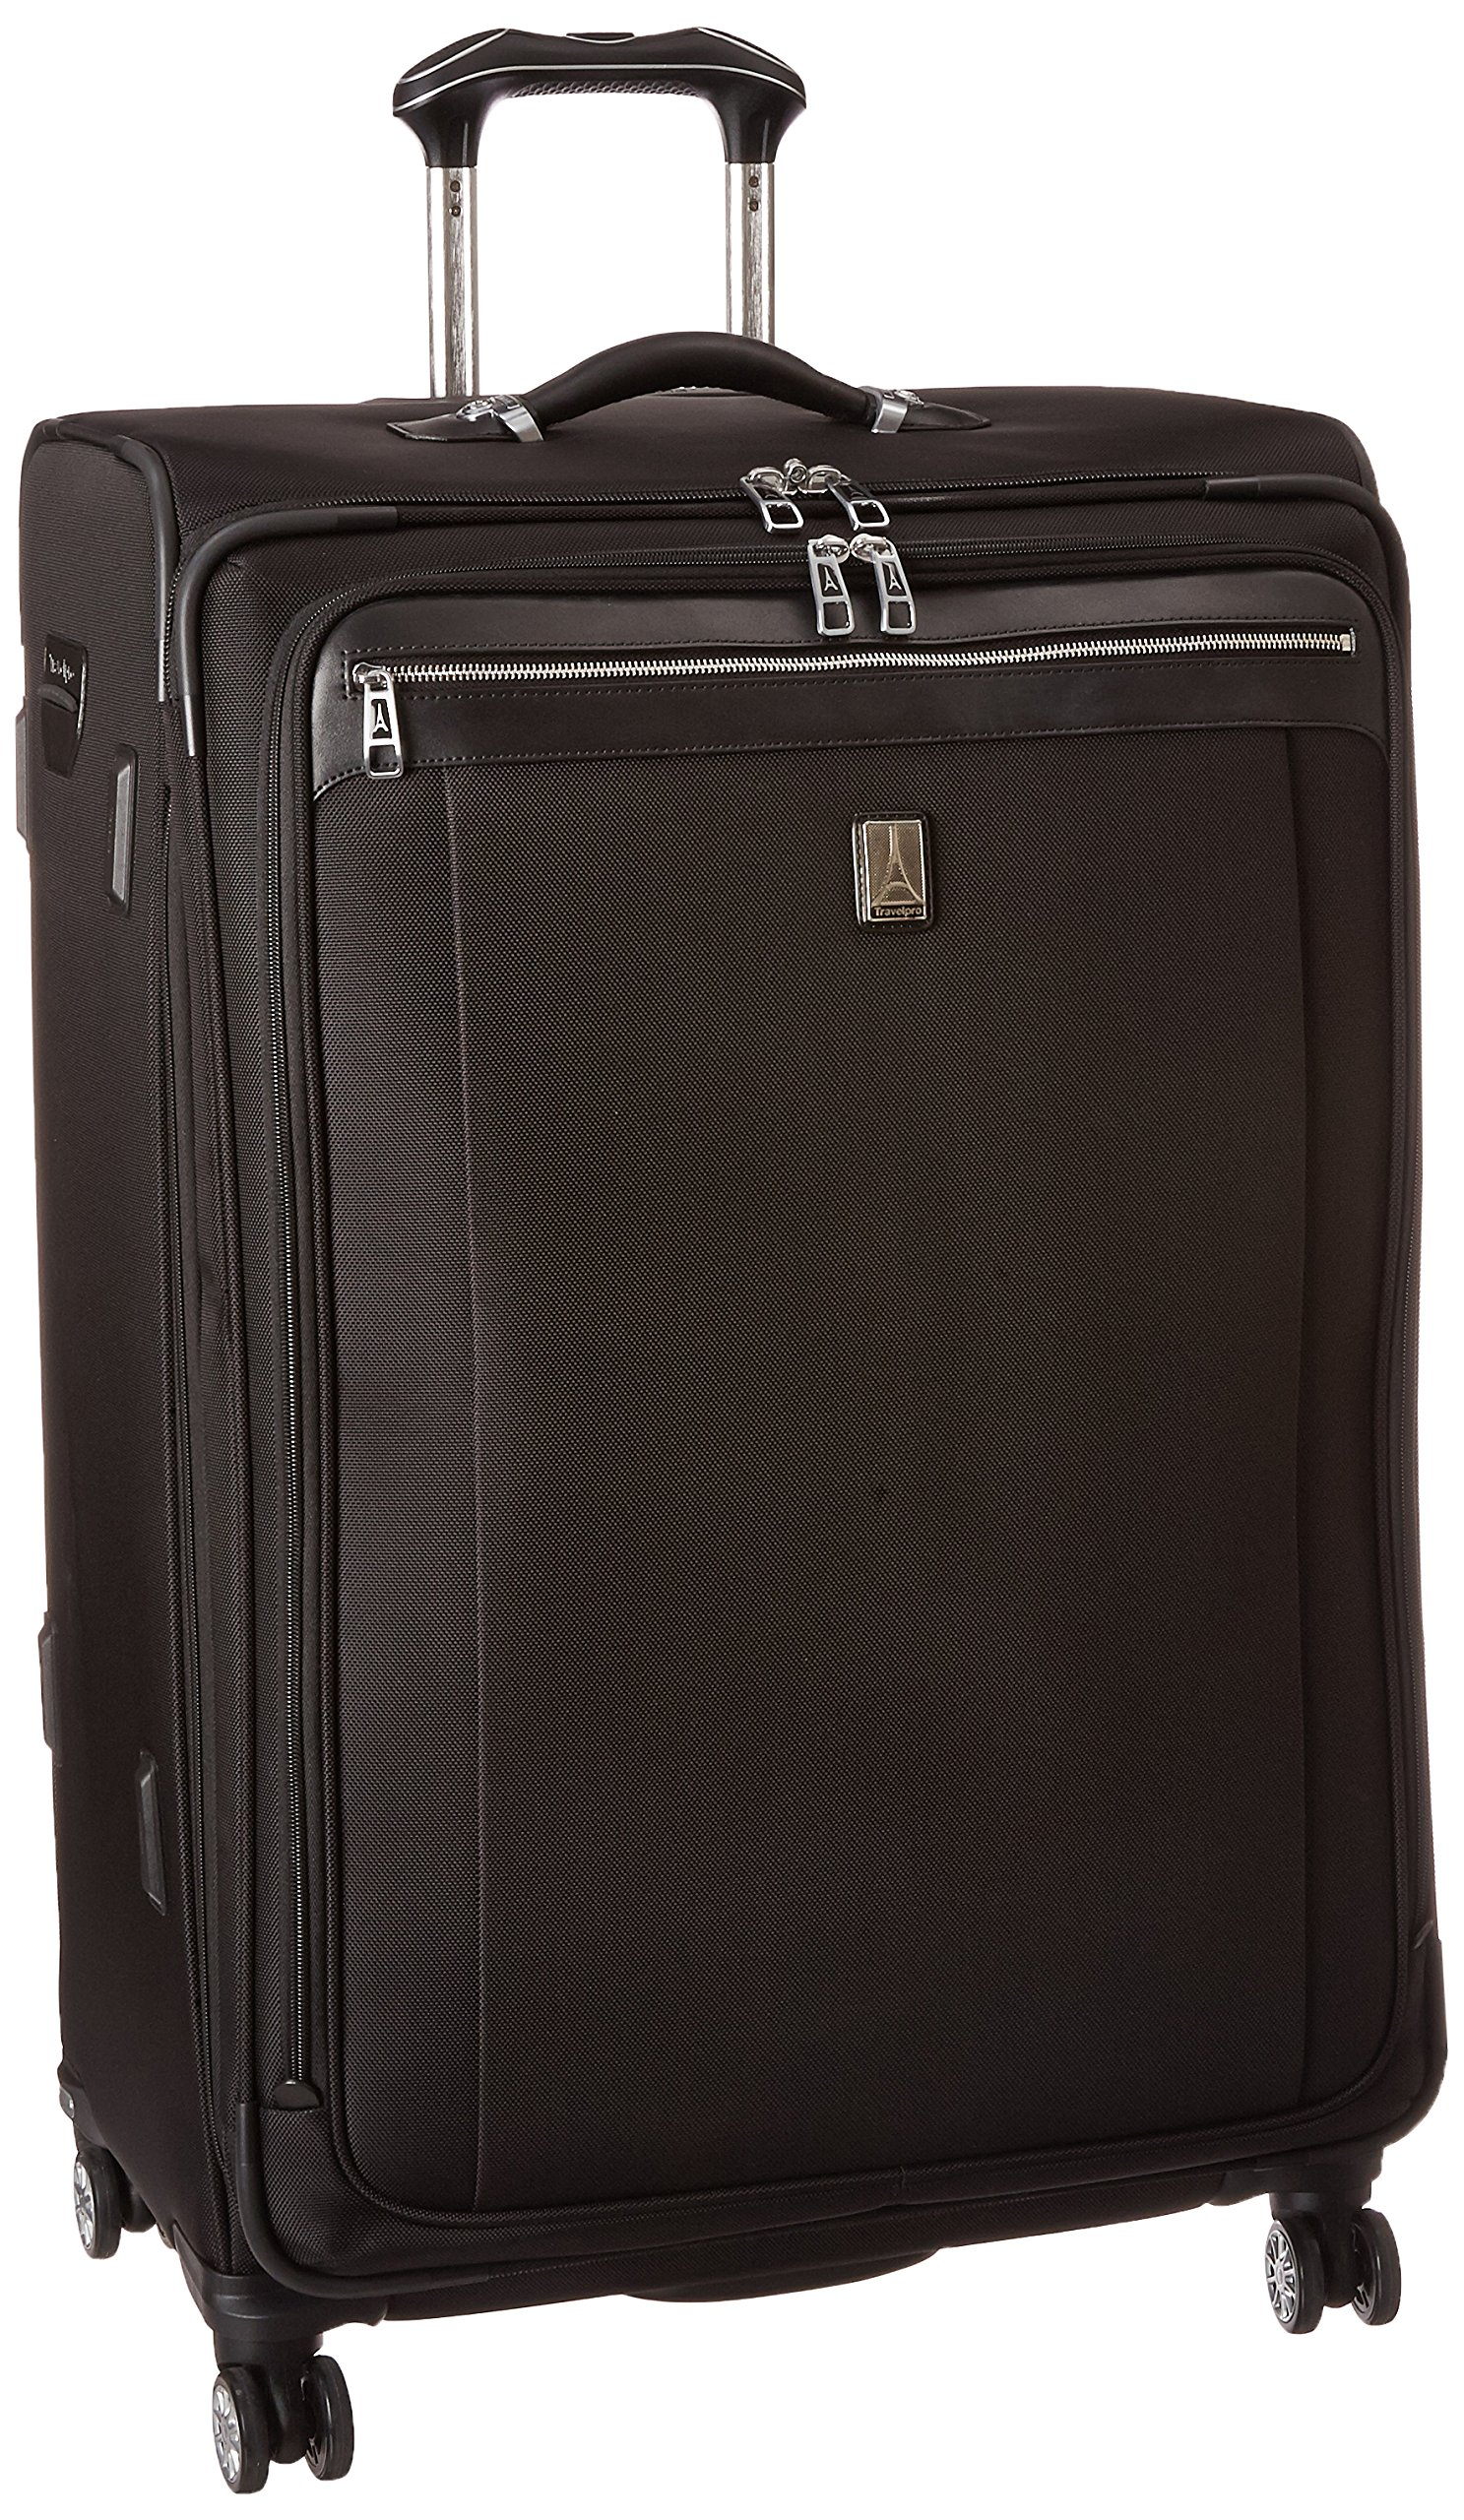 Travelpro PlatinumMagna2 Expandable Spinner Suiter Suitcase, 29-in., Black